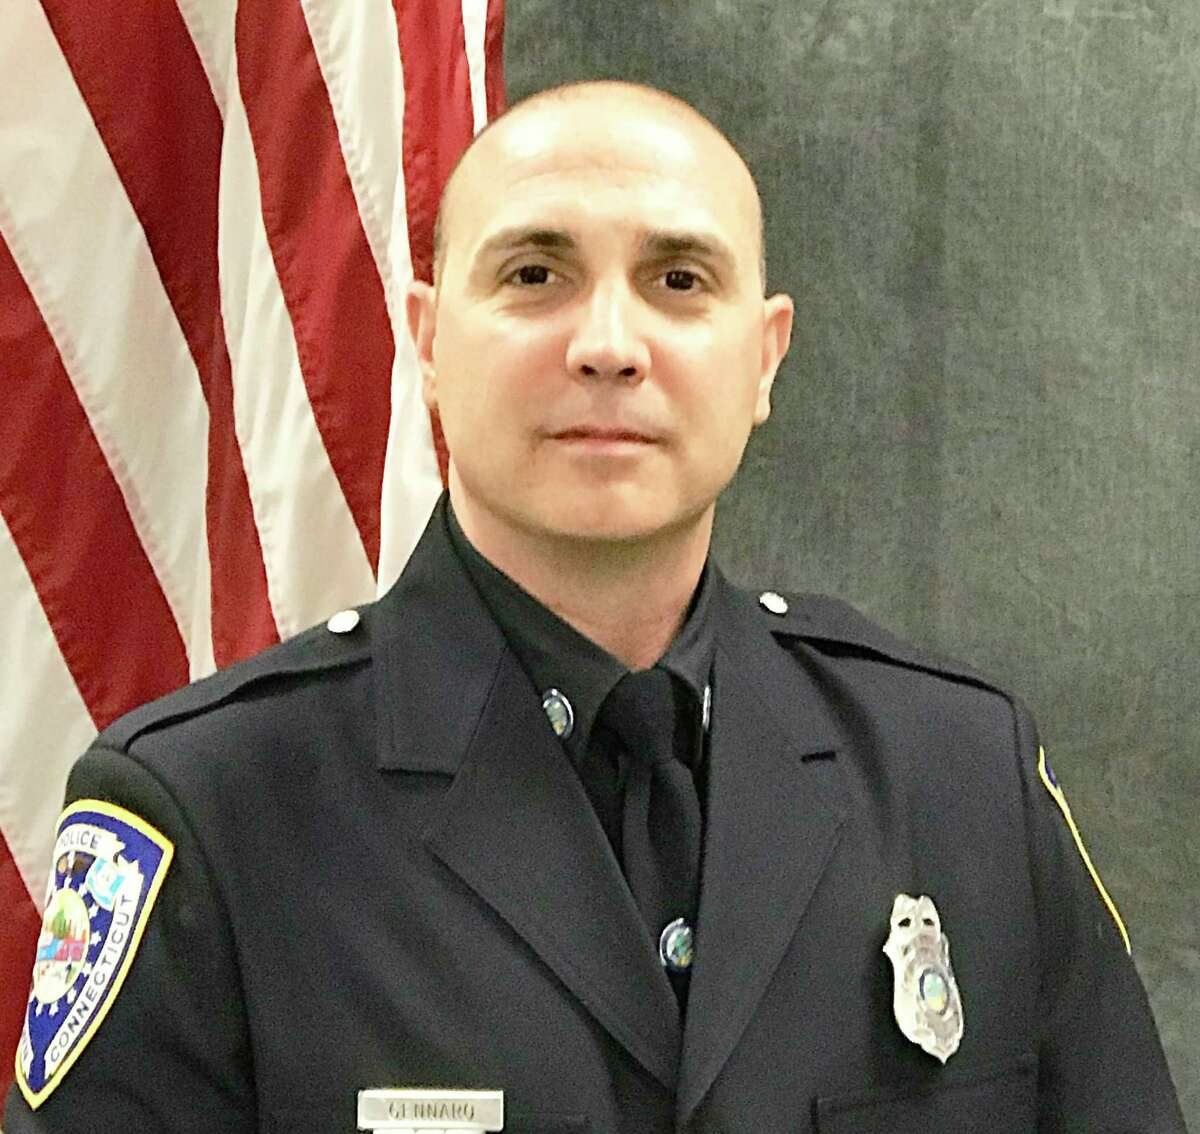 Common Council Deputy Minority Leader Anthony Gennaro, a retired police officer, was a school resource officer in Middletown for five years.